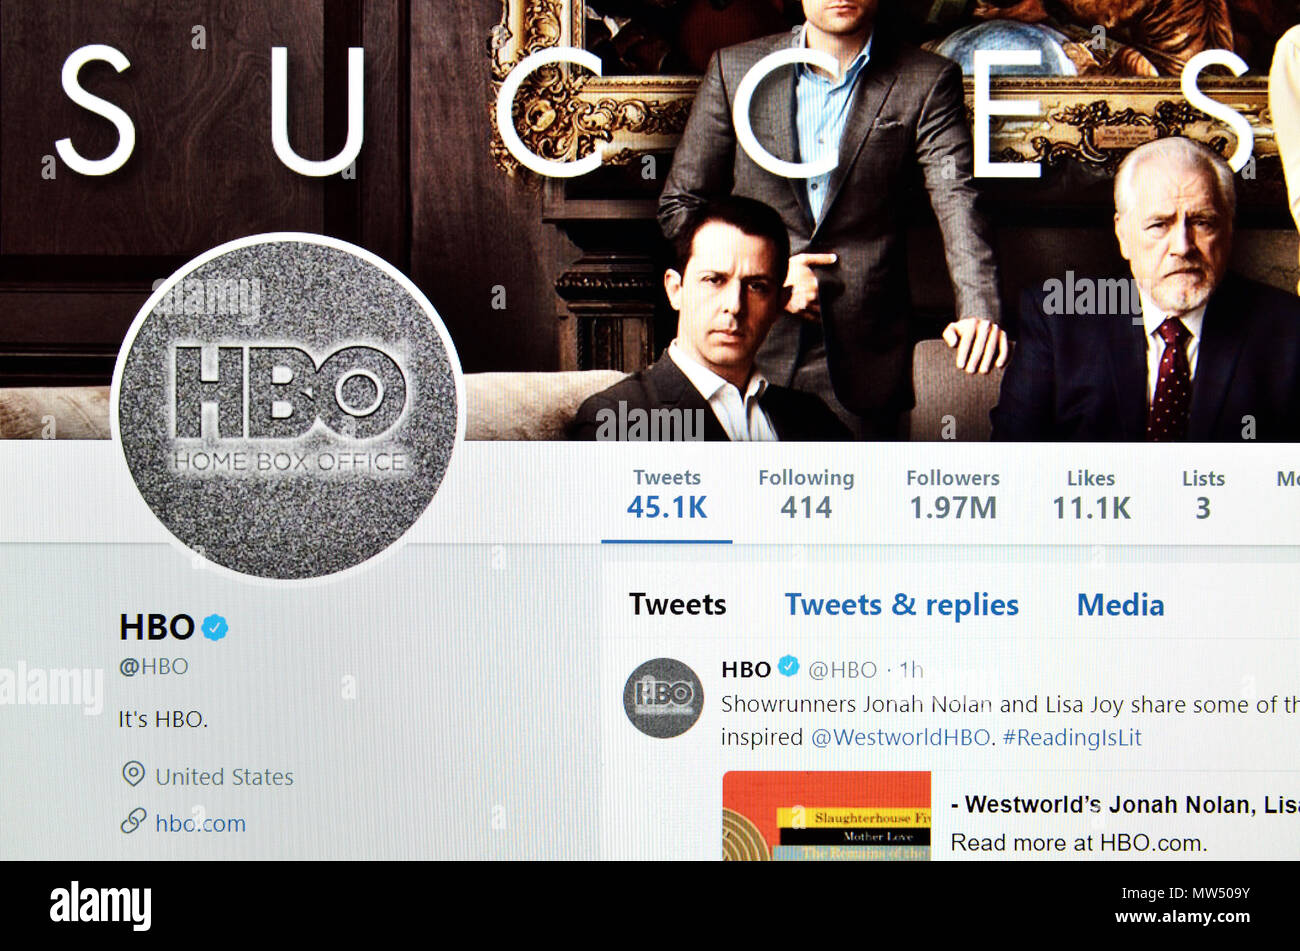 HBO (Home Box Office) Twitter Page (2018)